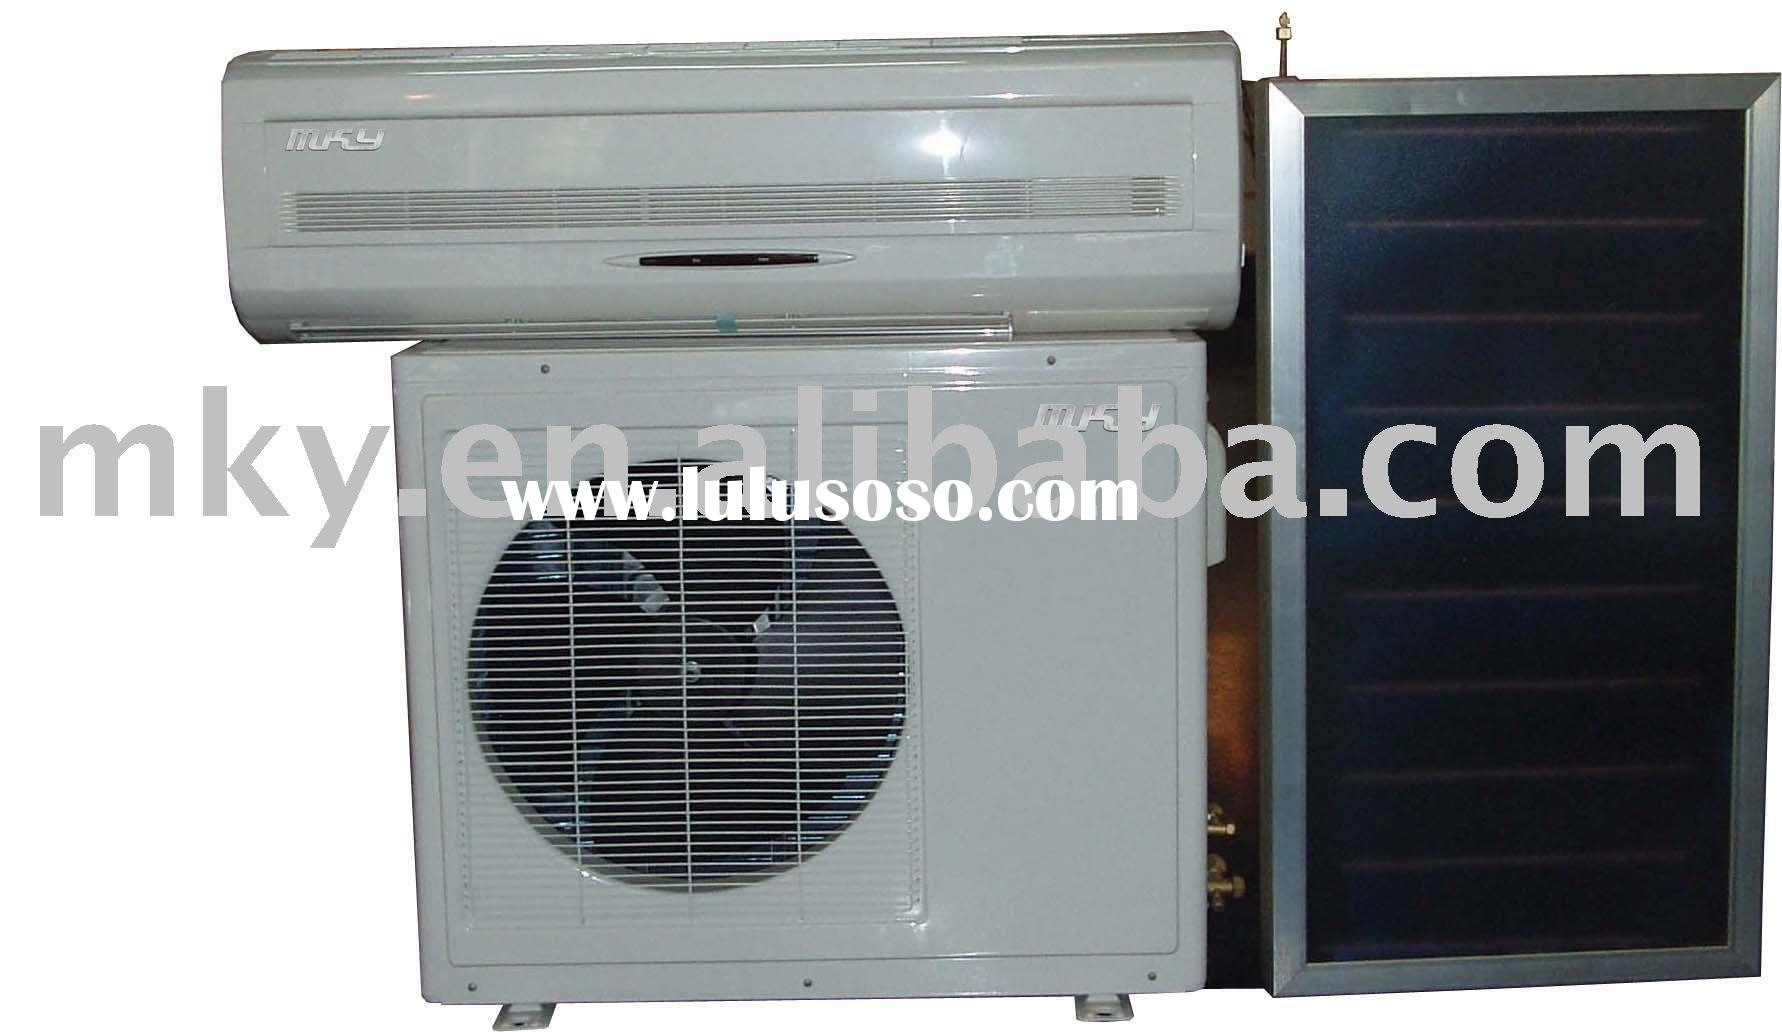 air conditioning diaghram carrier industrial air conditioning  #603924